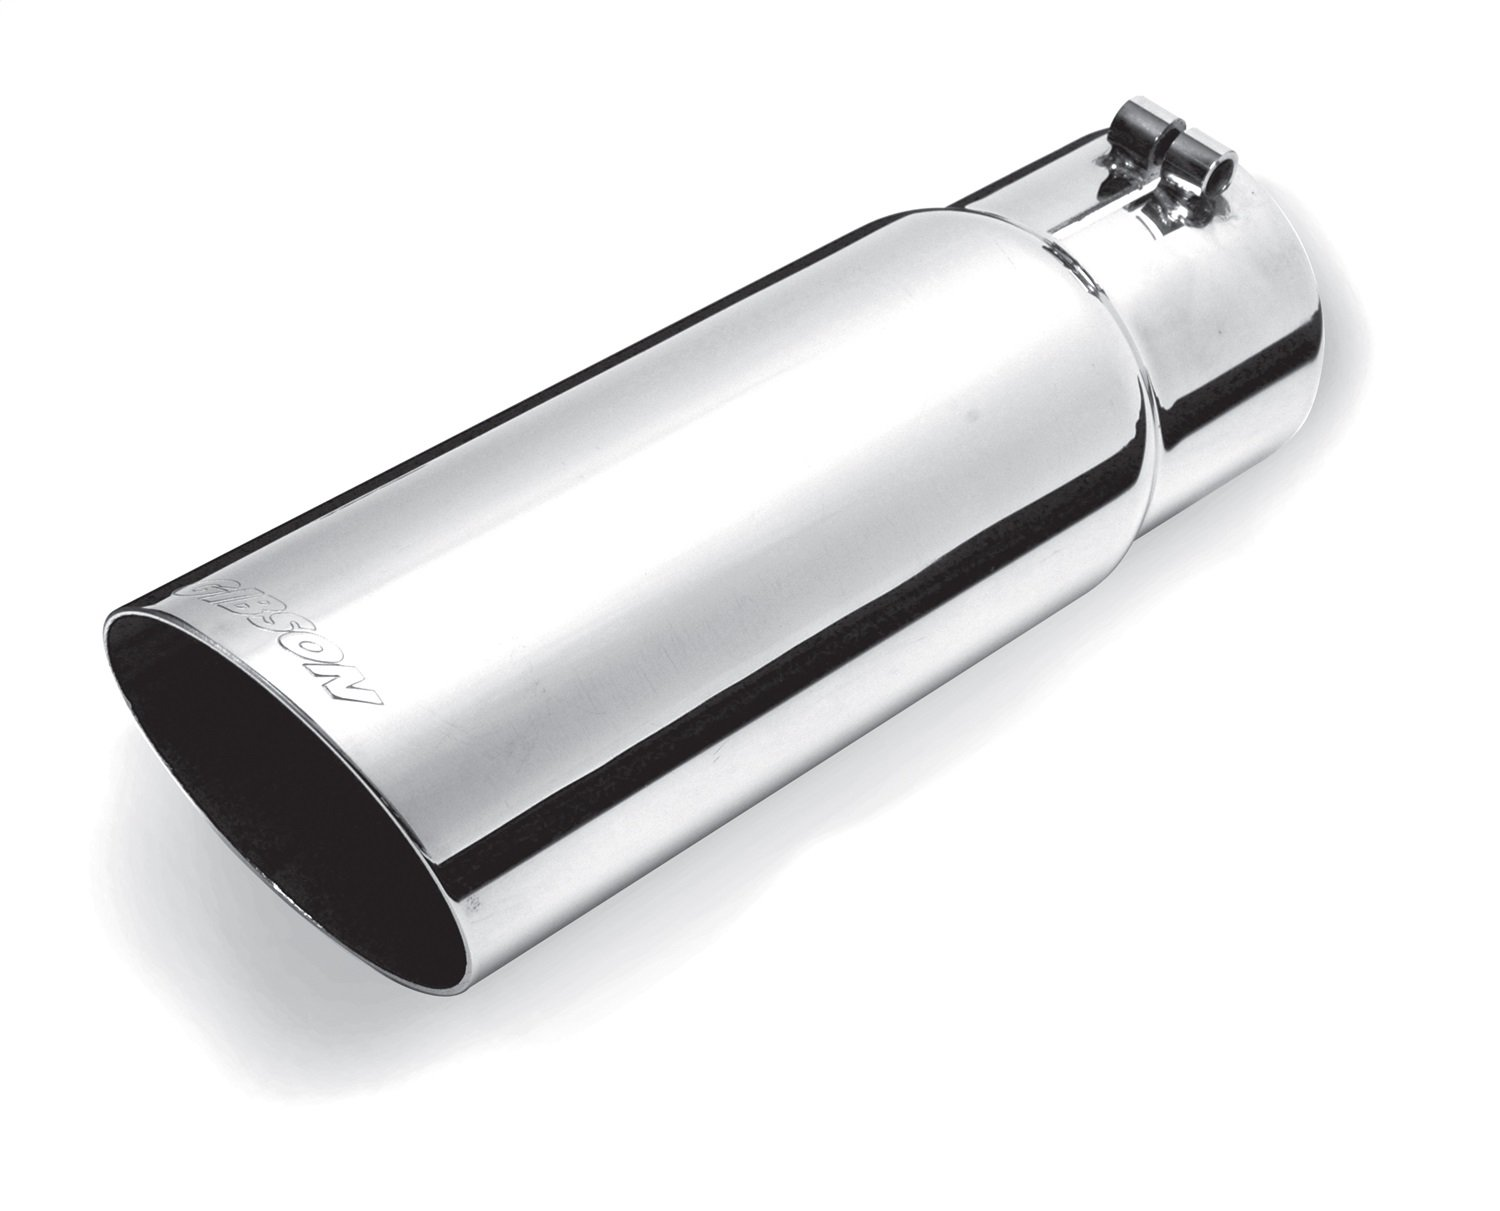 Gibson 500361 Polished Stainless Steel Exhaust Tip Gibson Performance Exhaust